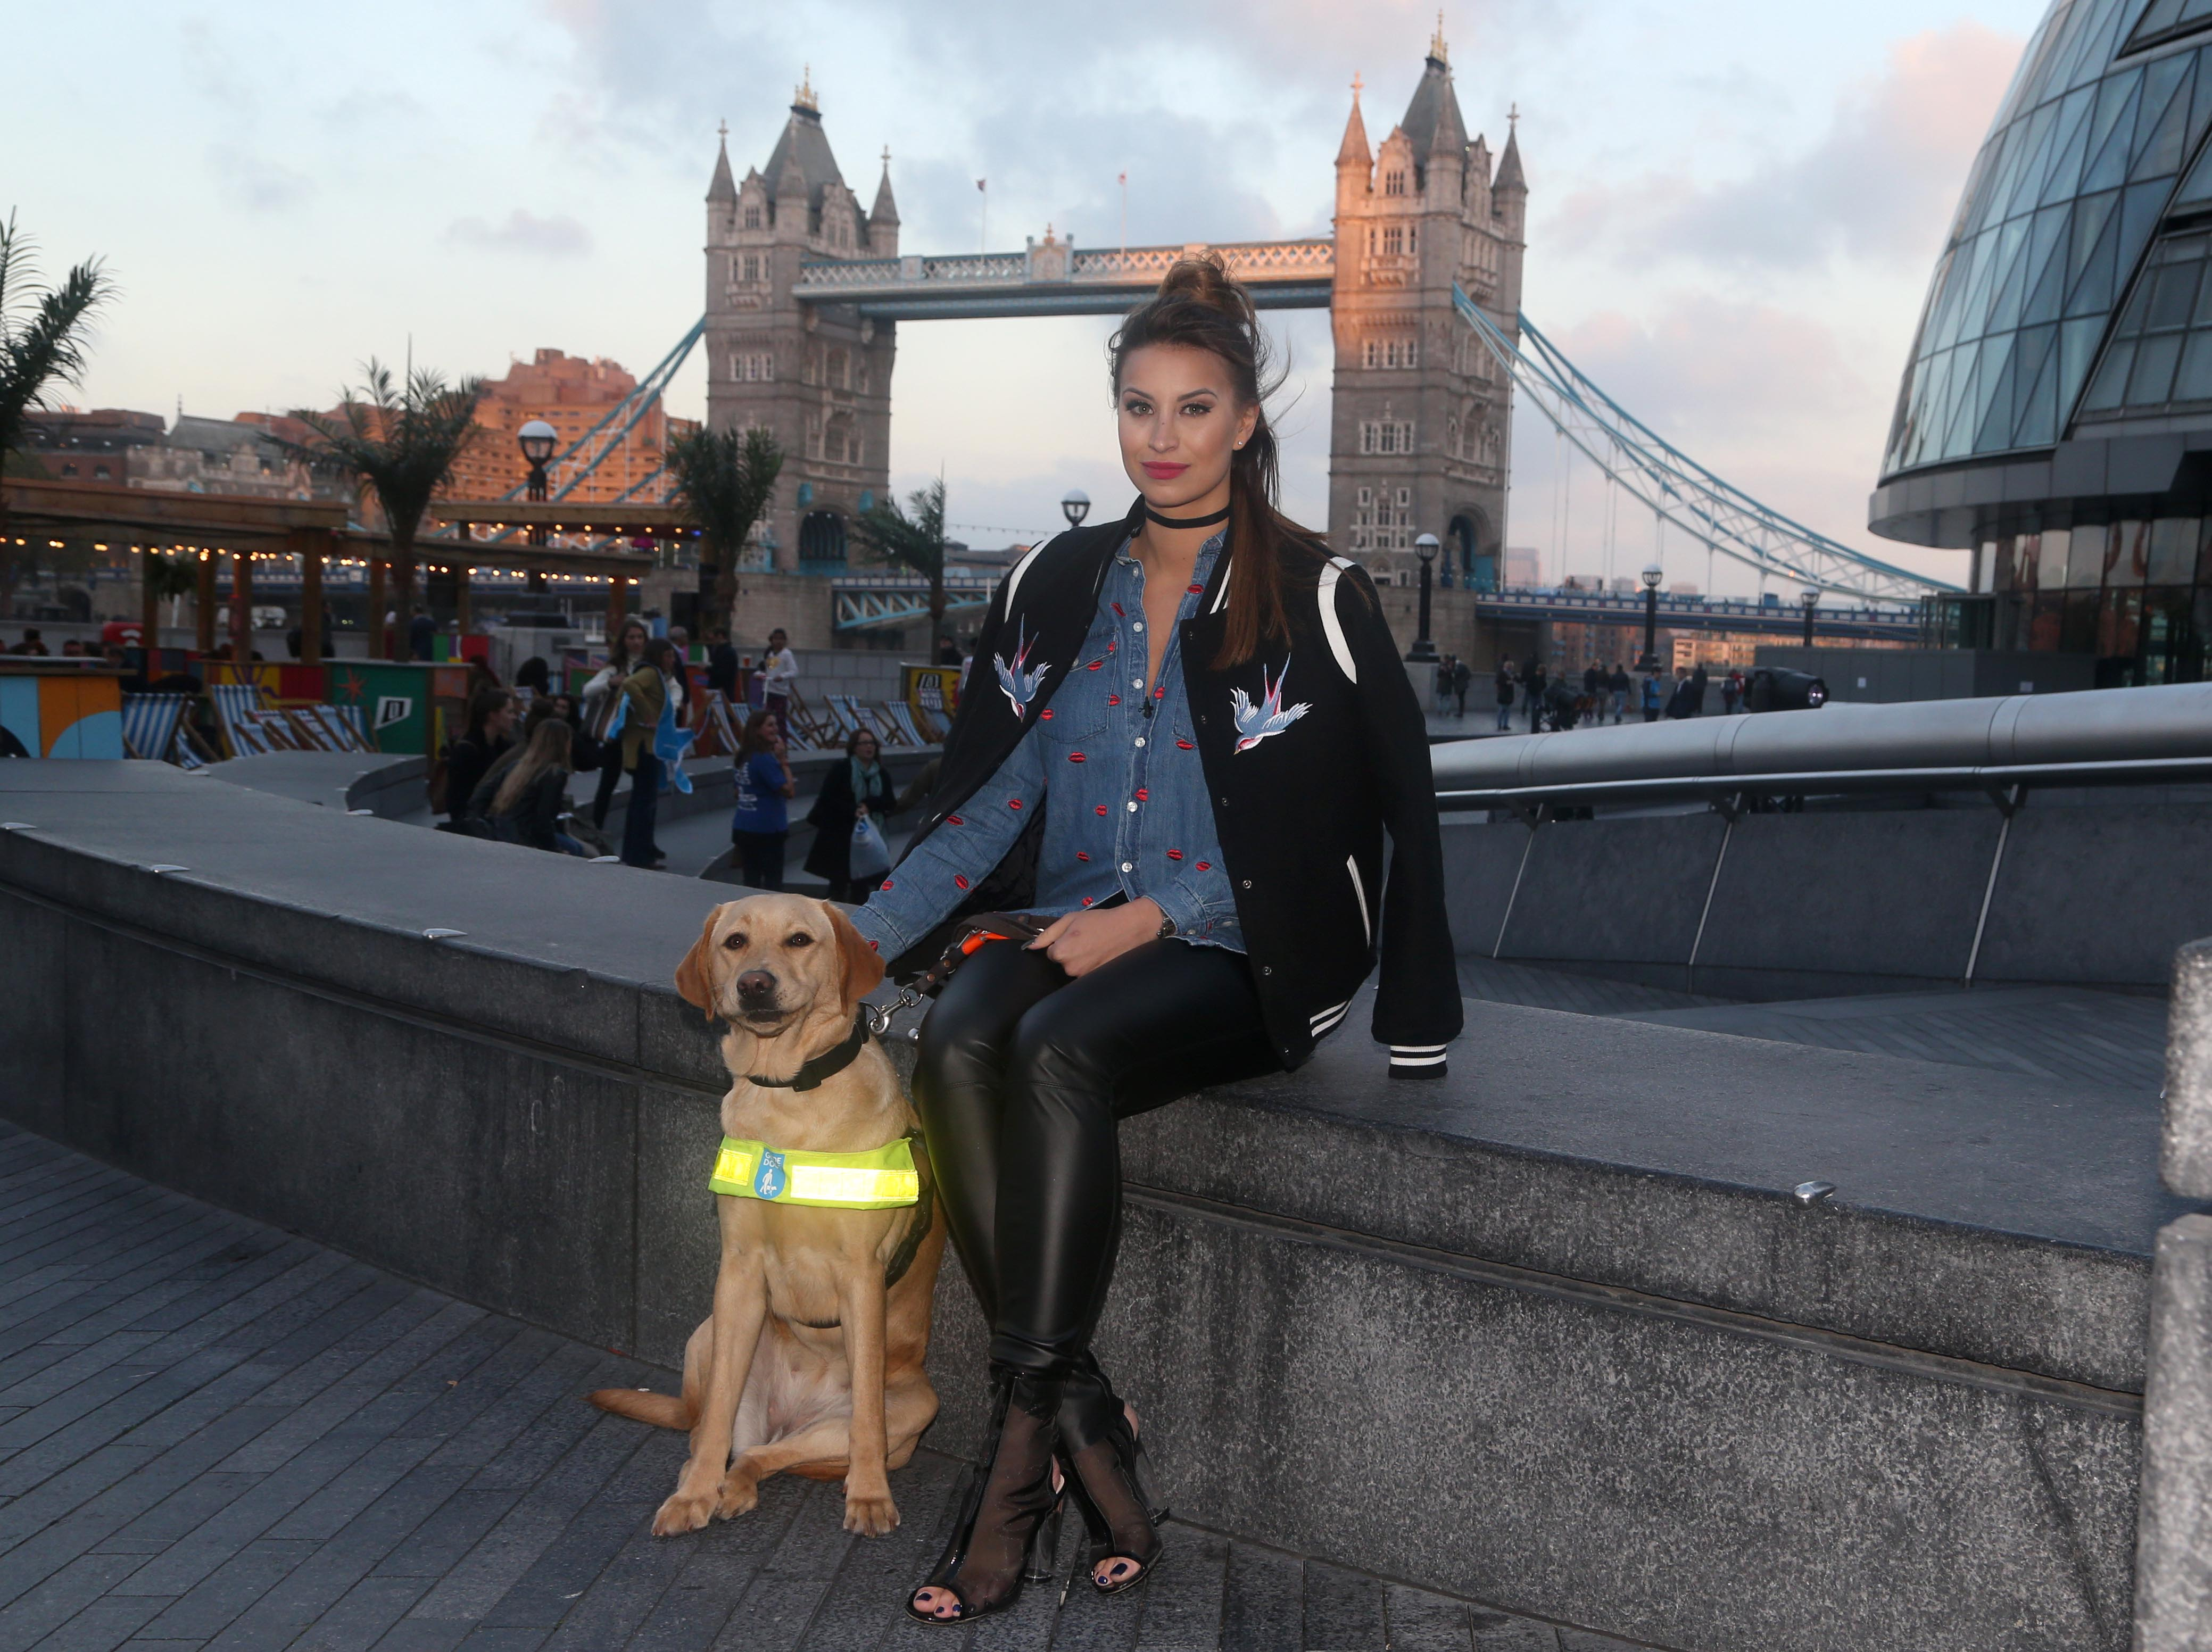 third-city-guide-dogs-ferne-mccann